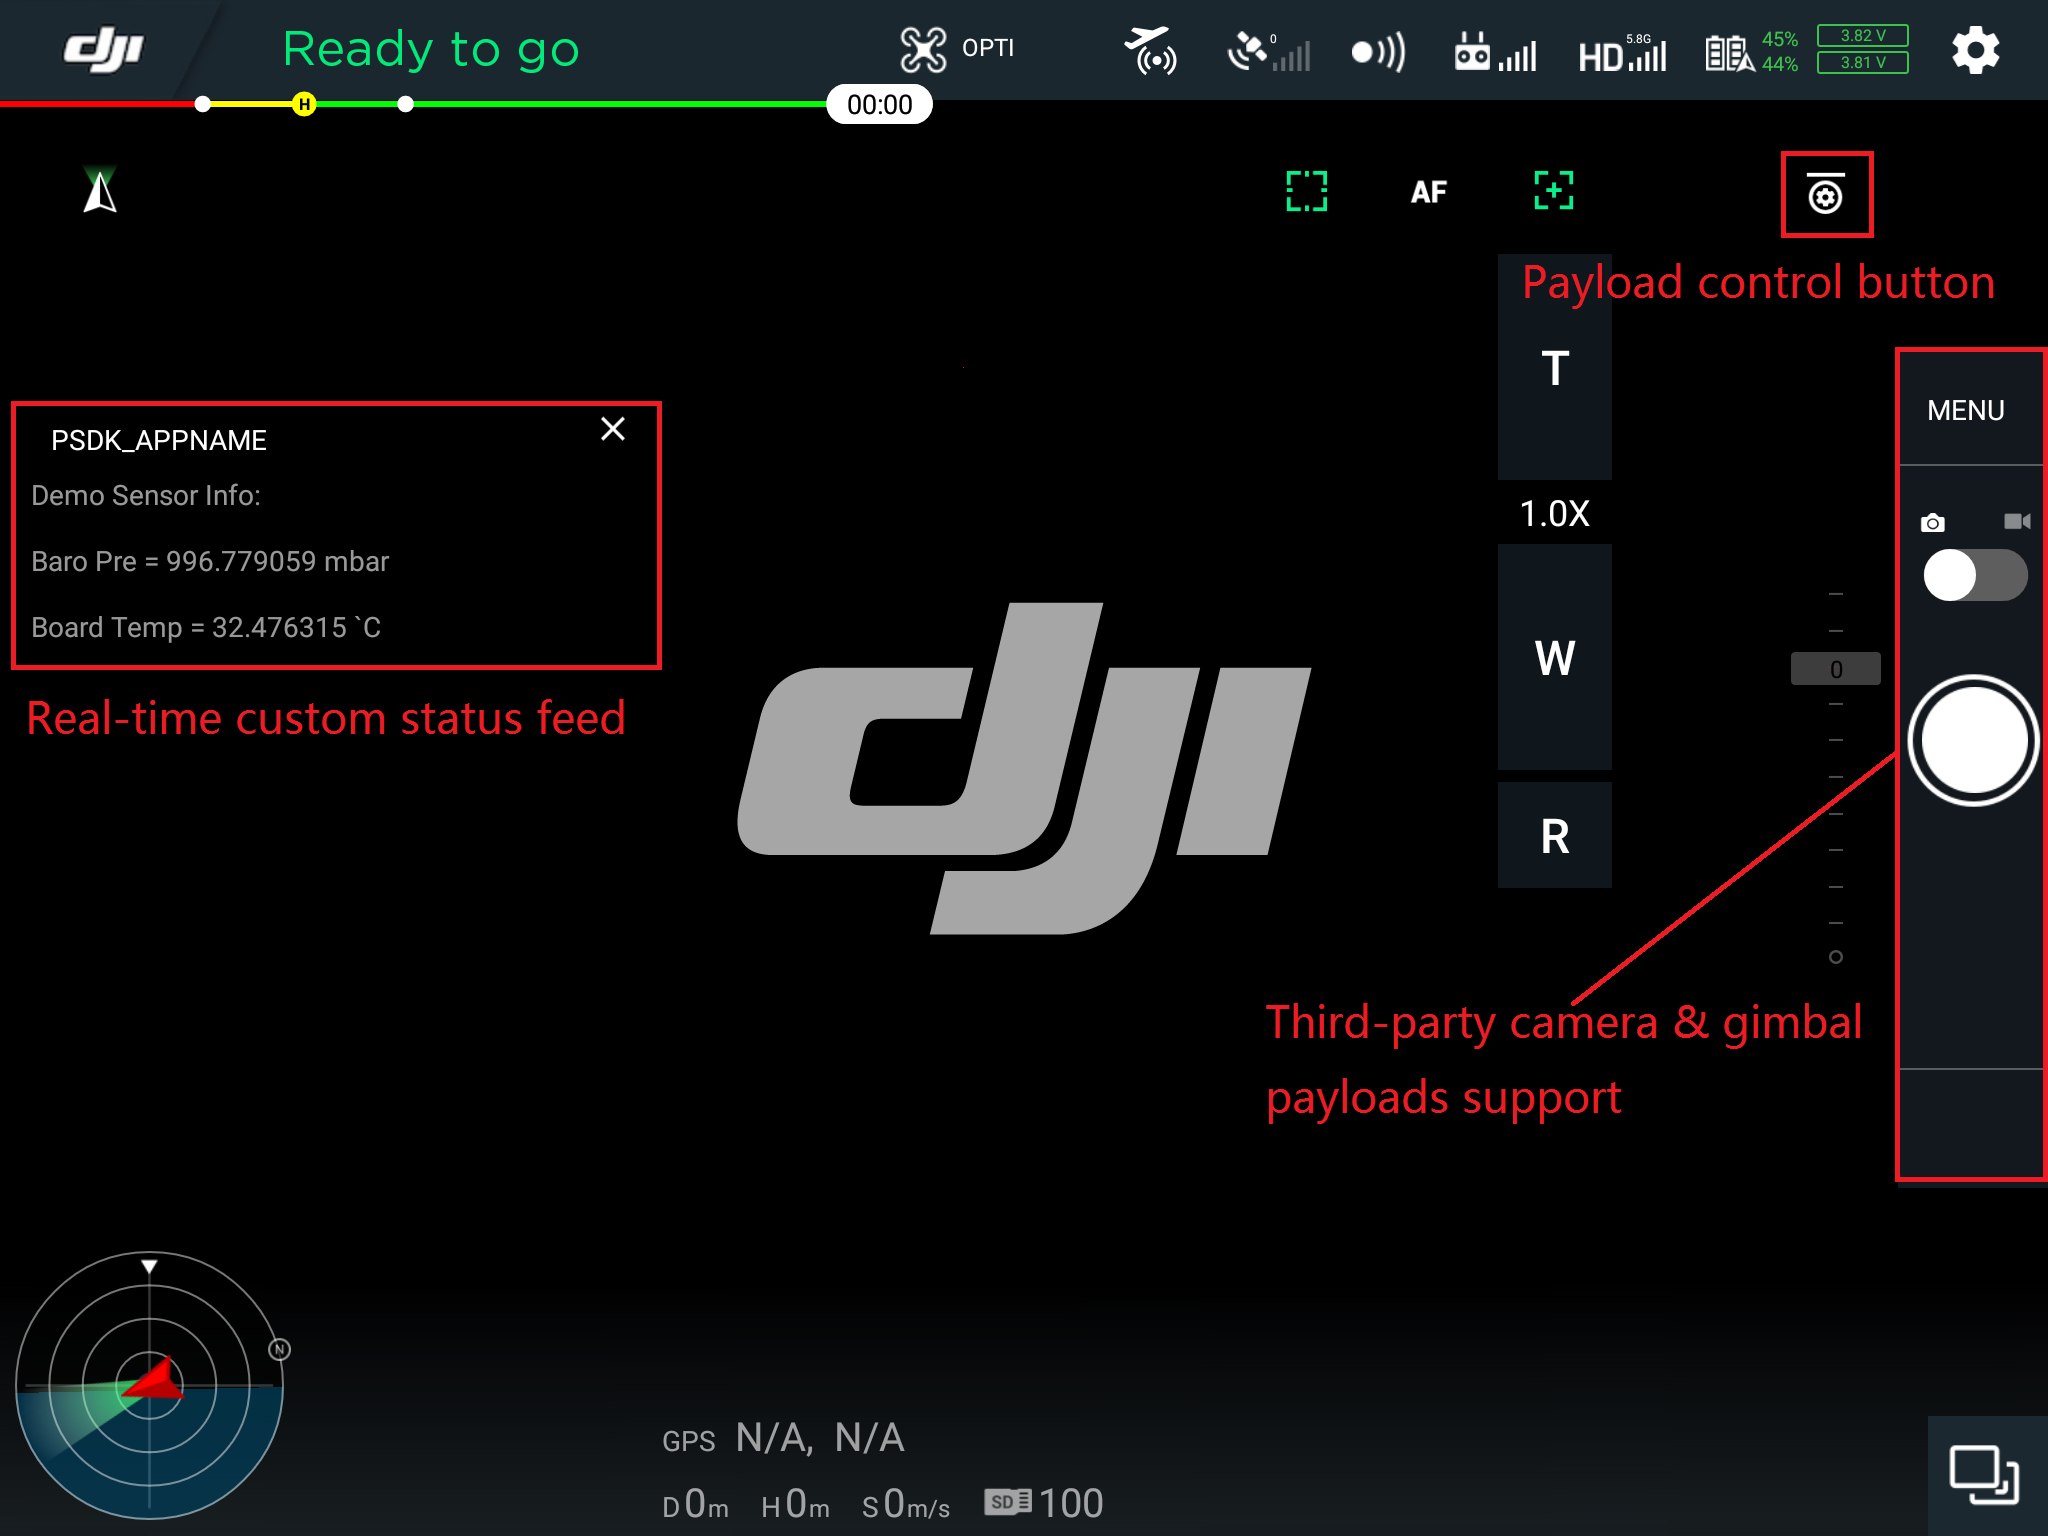 Dji Developer Discount